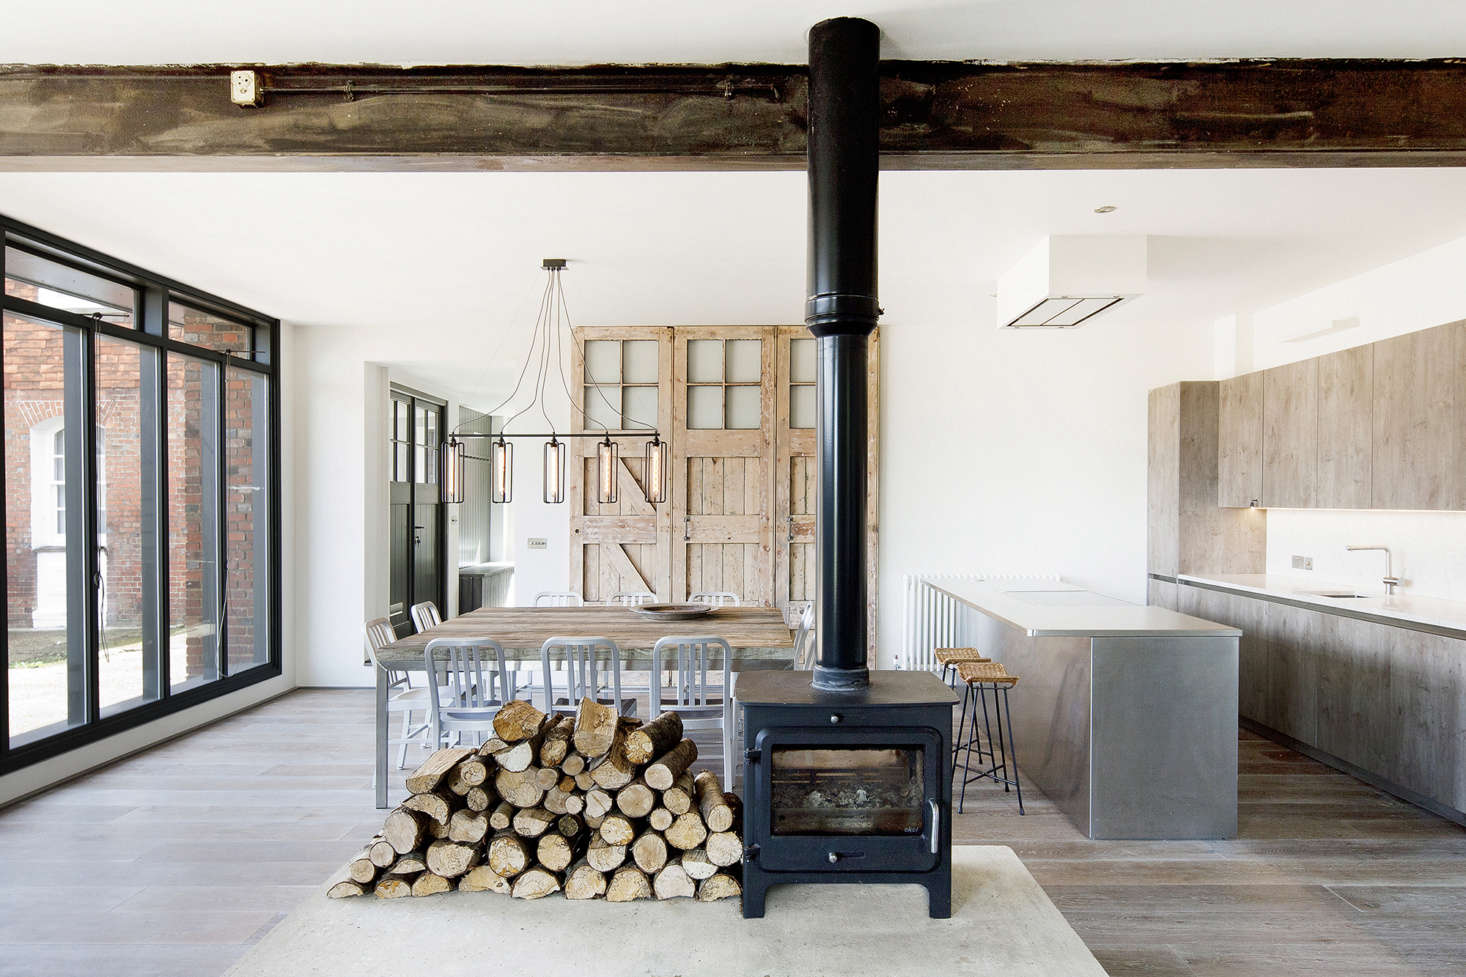 Inside, a double-sided wood-burning stove stands on a large concrete plinth in the middle of the space, creating a central heat source and focal point. Medieval dwellings were often arranged around a central hearth, and Nowicka sees this is a nod to the far-reaching history of the area.